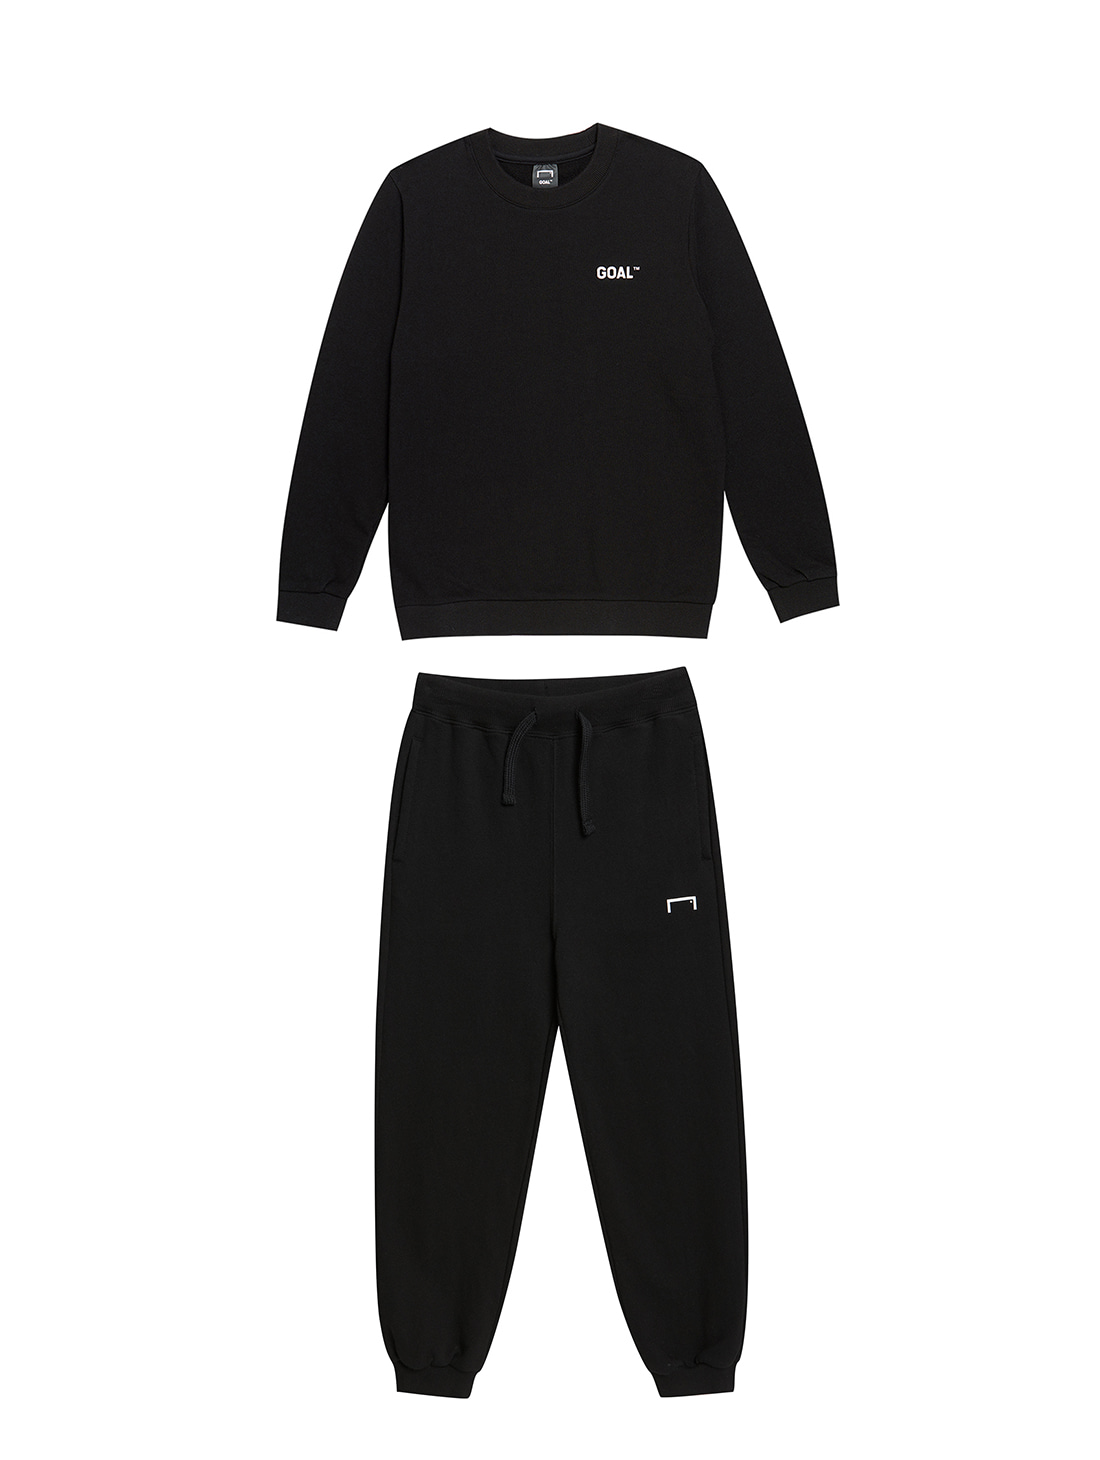 [10% OFF] (KIDS) BACK LOGO SWEATSHIRTS & PANTS SET